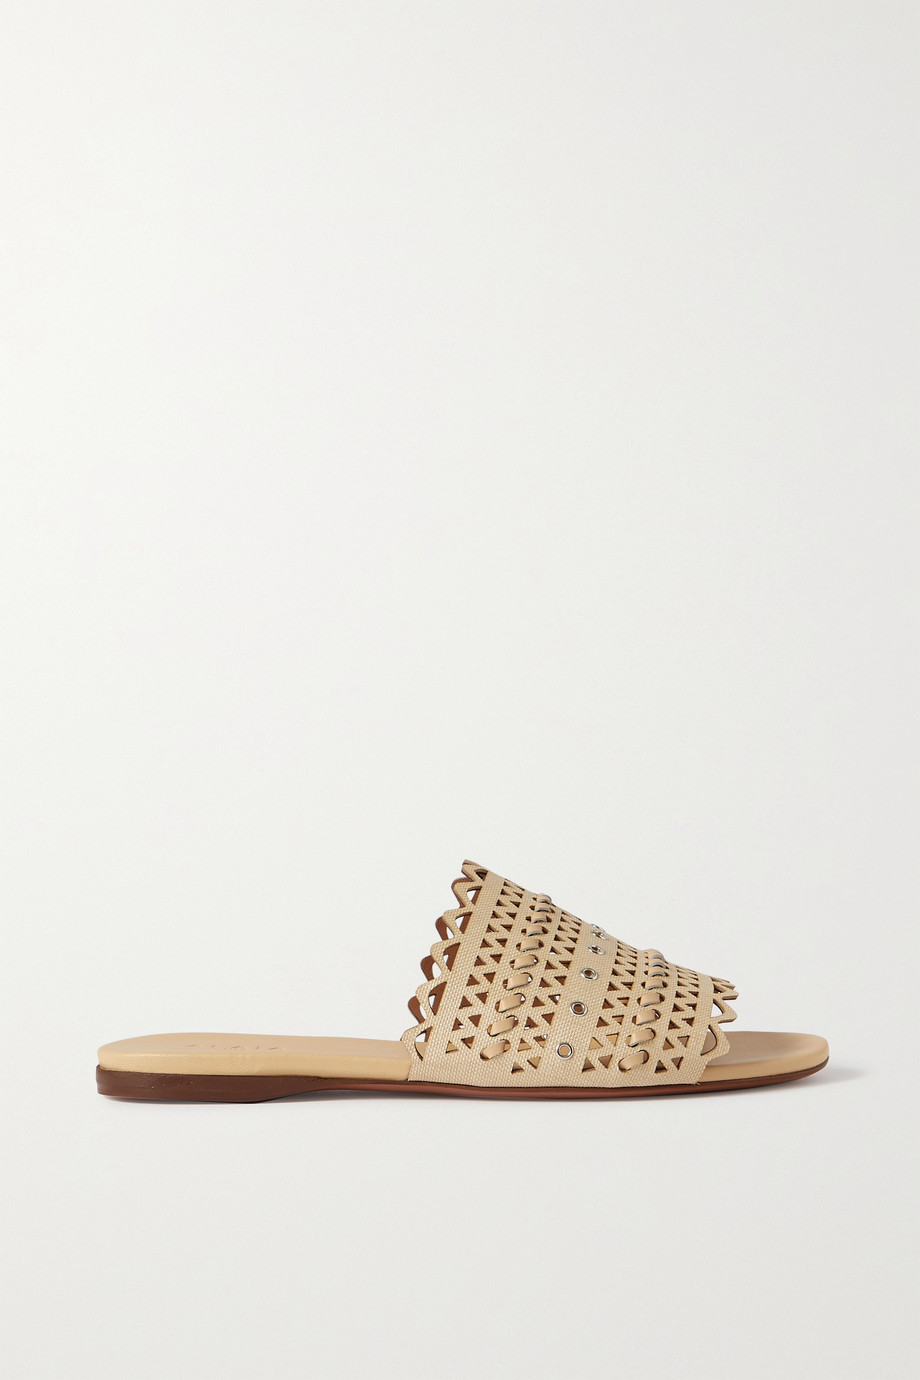 Alaïa Eyelet-embellished laser-cut raffia and leather slides